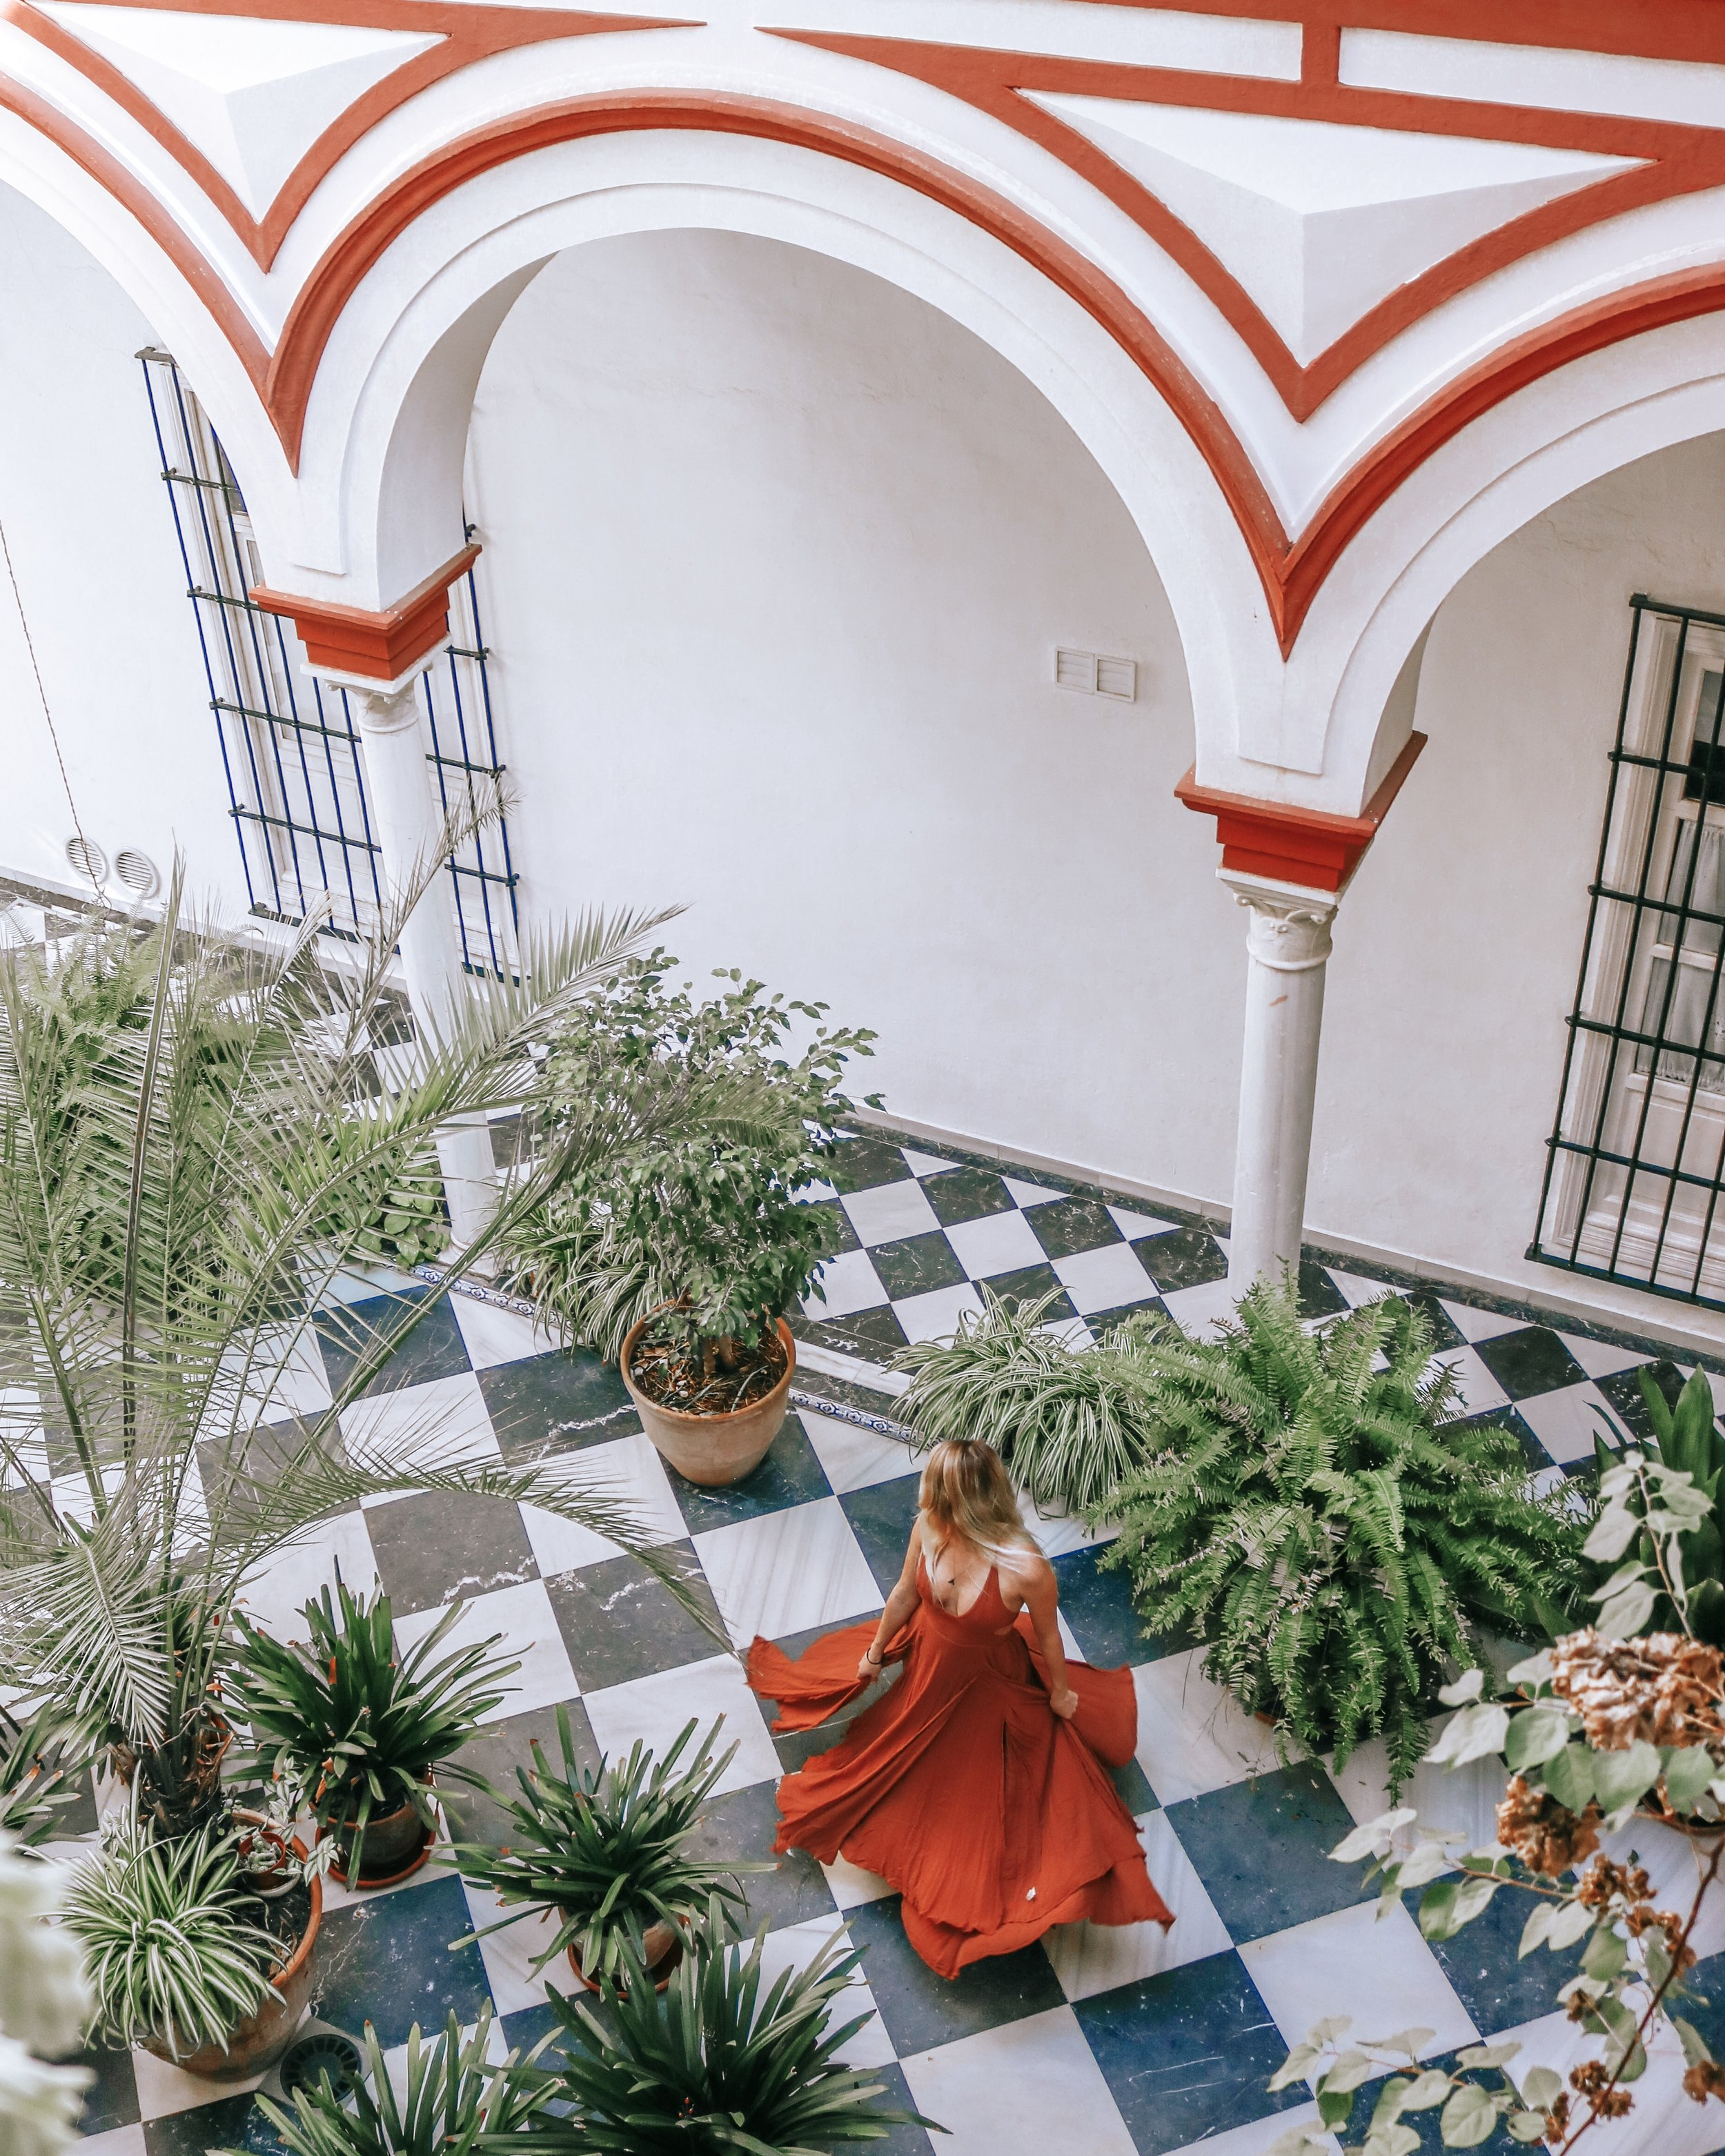 airbnb in seville, spain